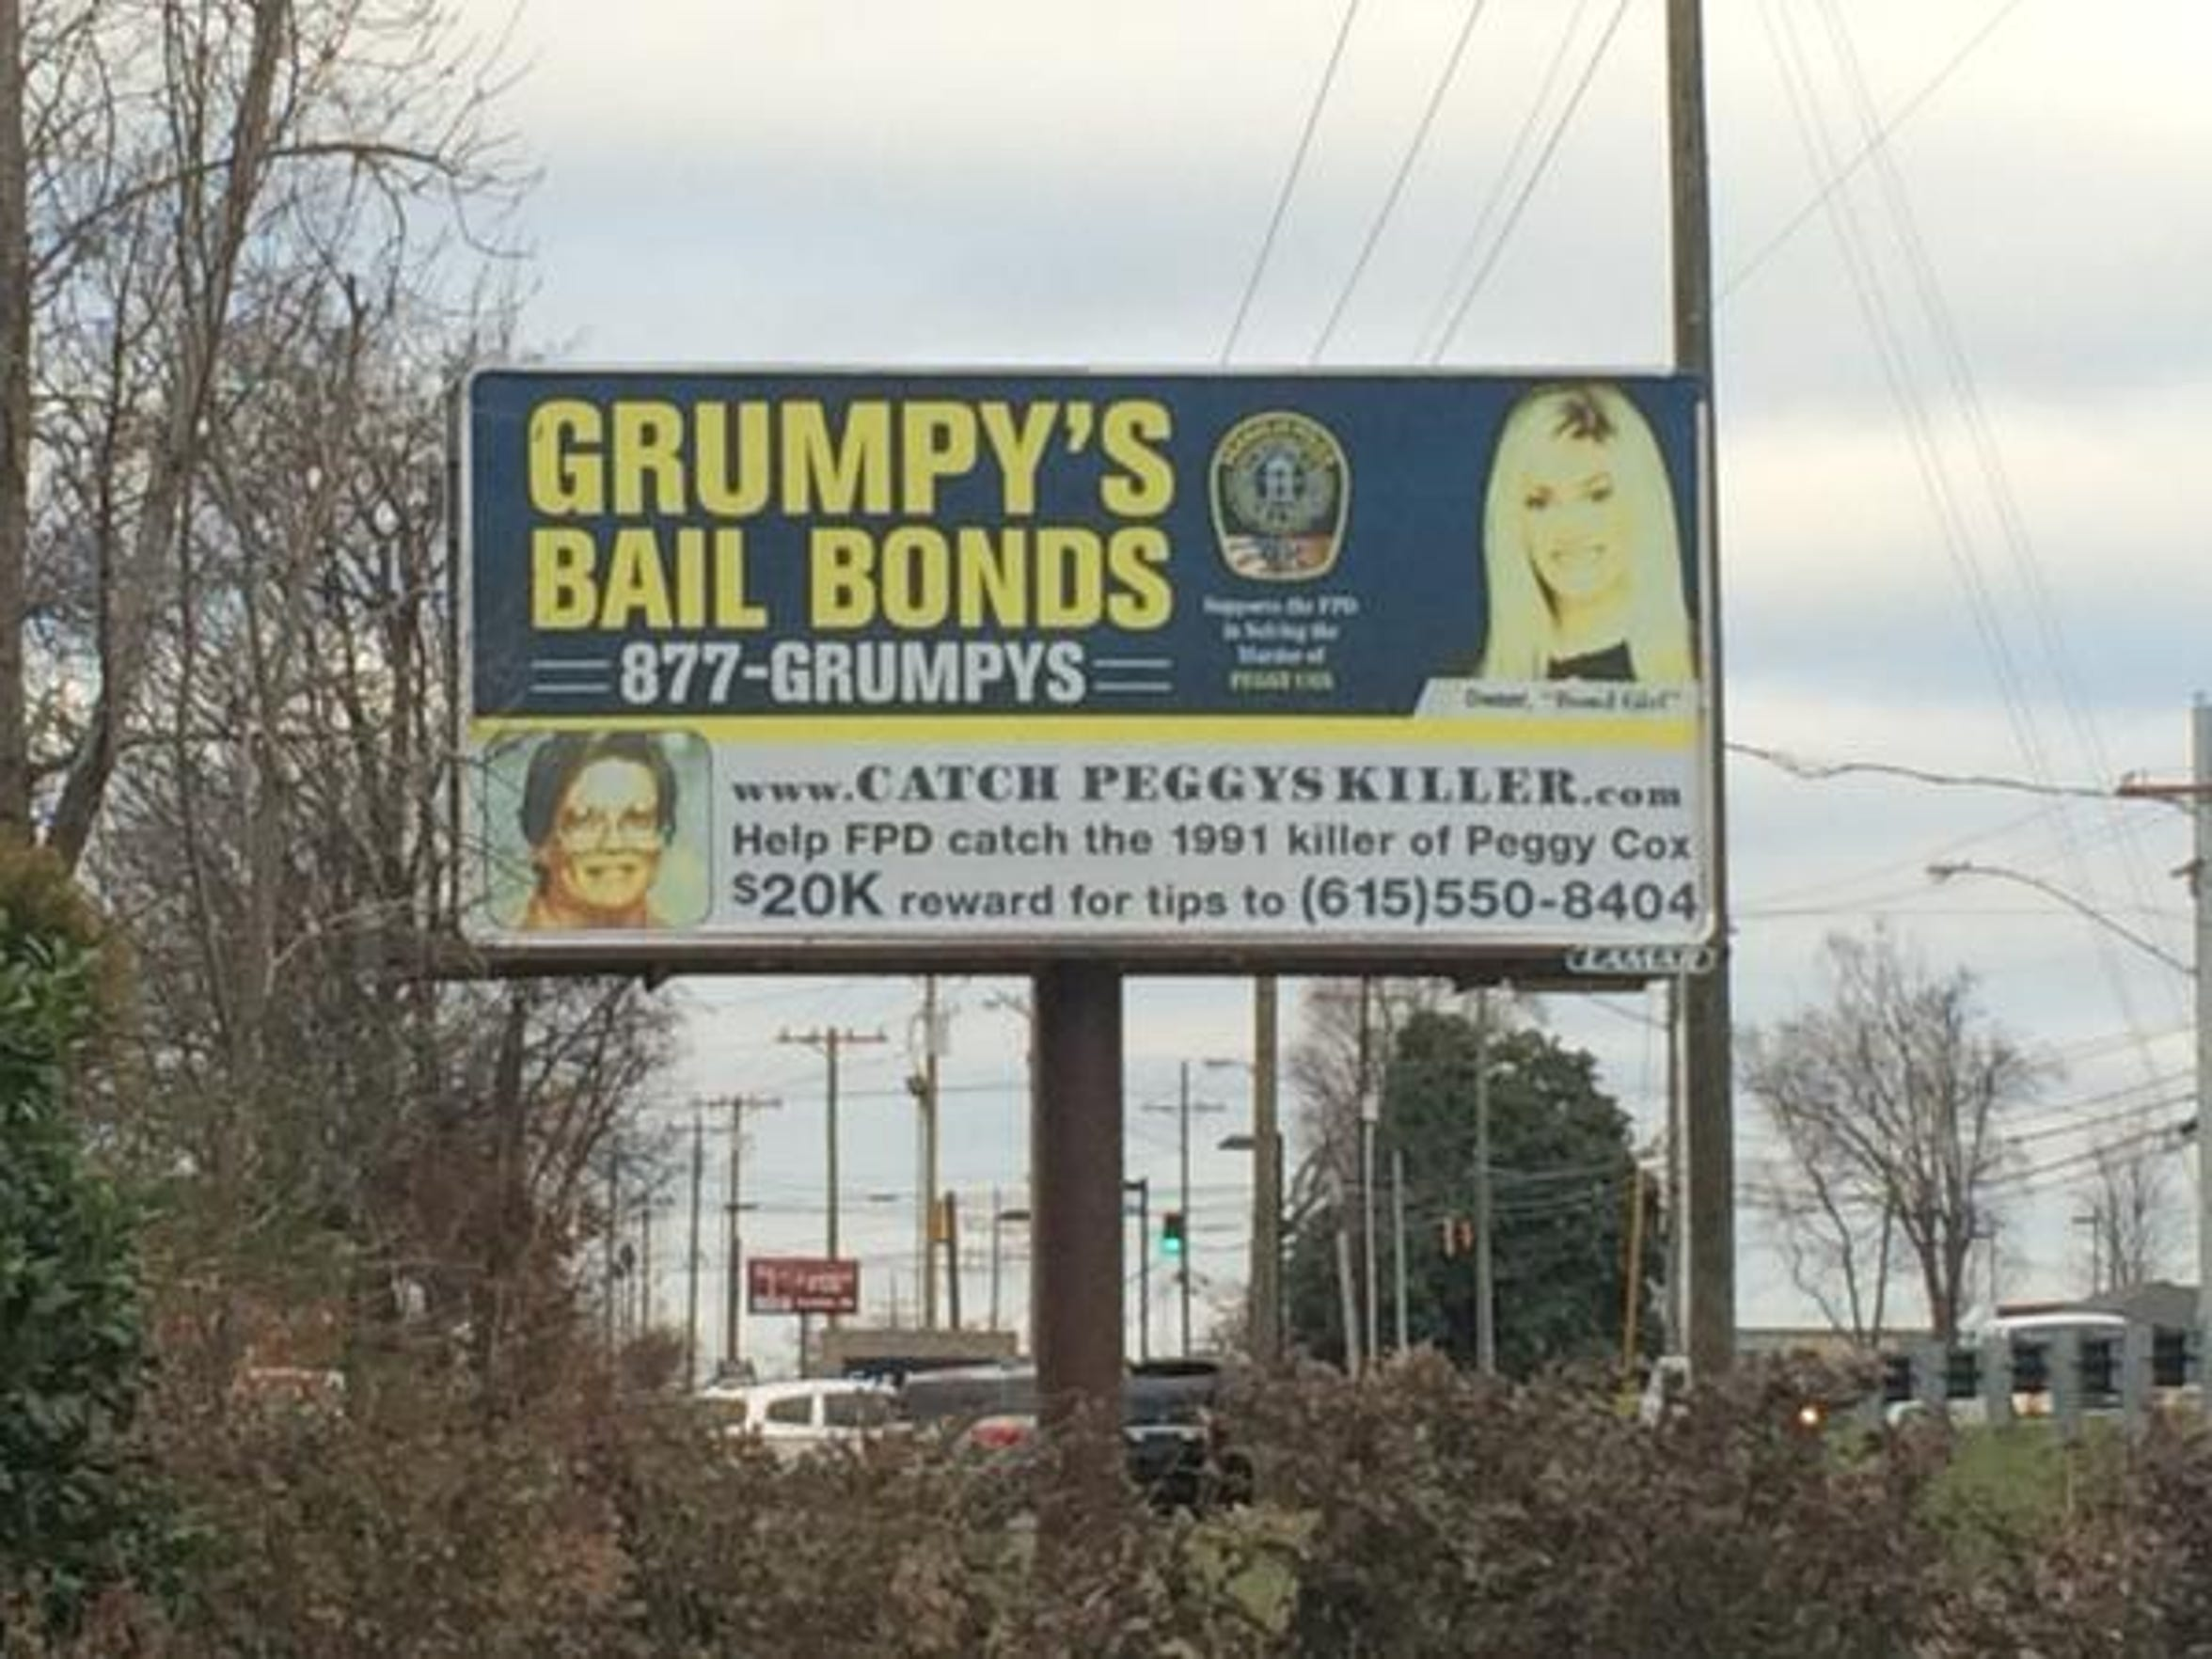 A billboard posted along Columbia Avenue in Franklin, which has since been taken down, asks for help finding Peggy Cox's killer. The billboard was the result of cooperation between Grumpy's and the City of Franklin.